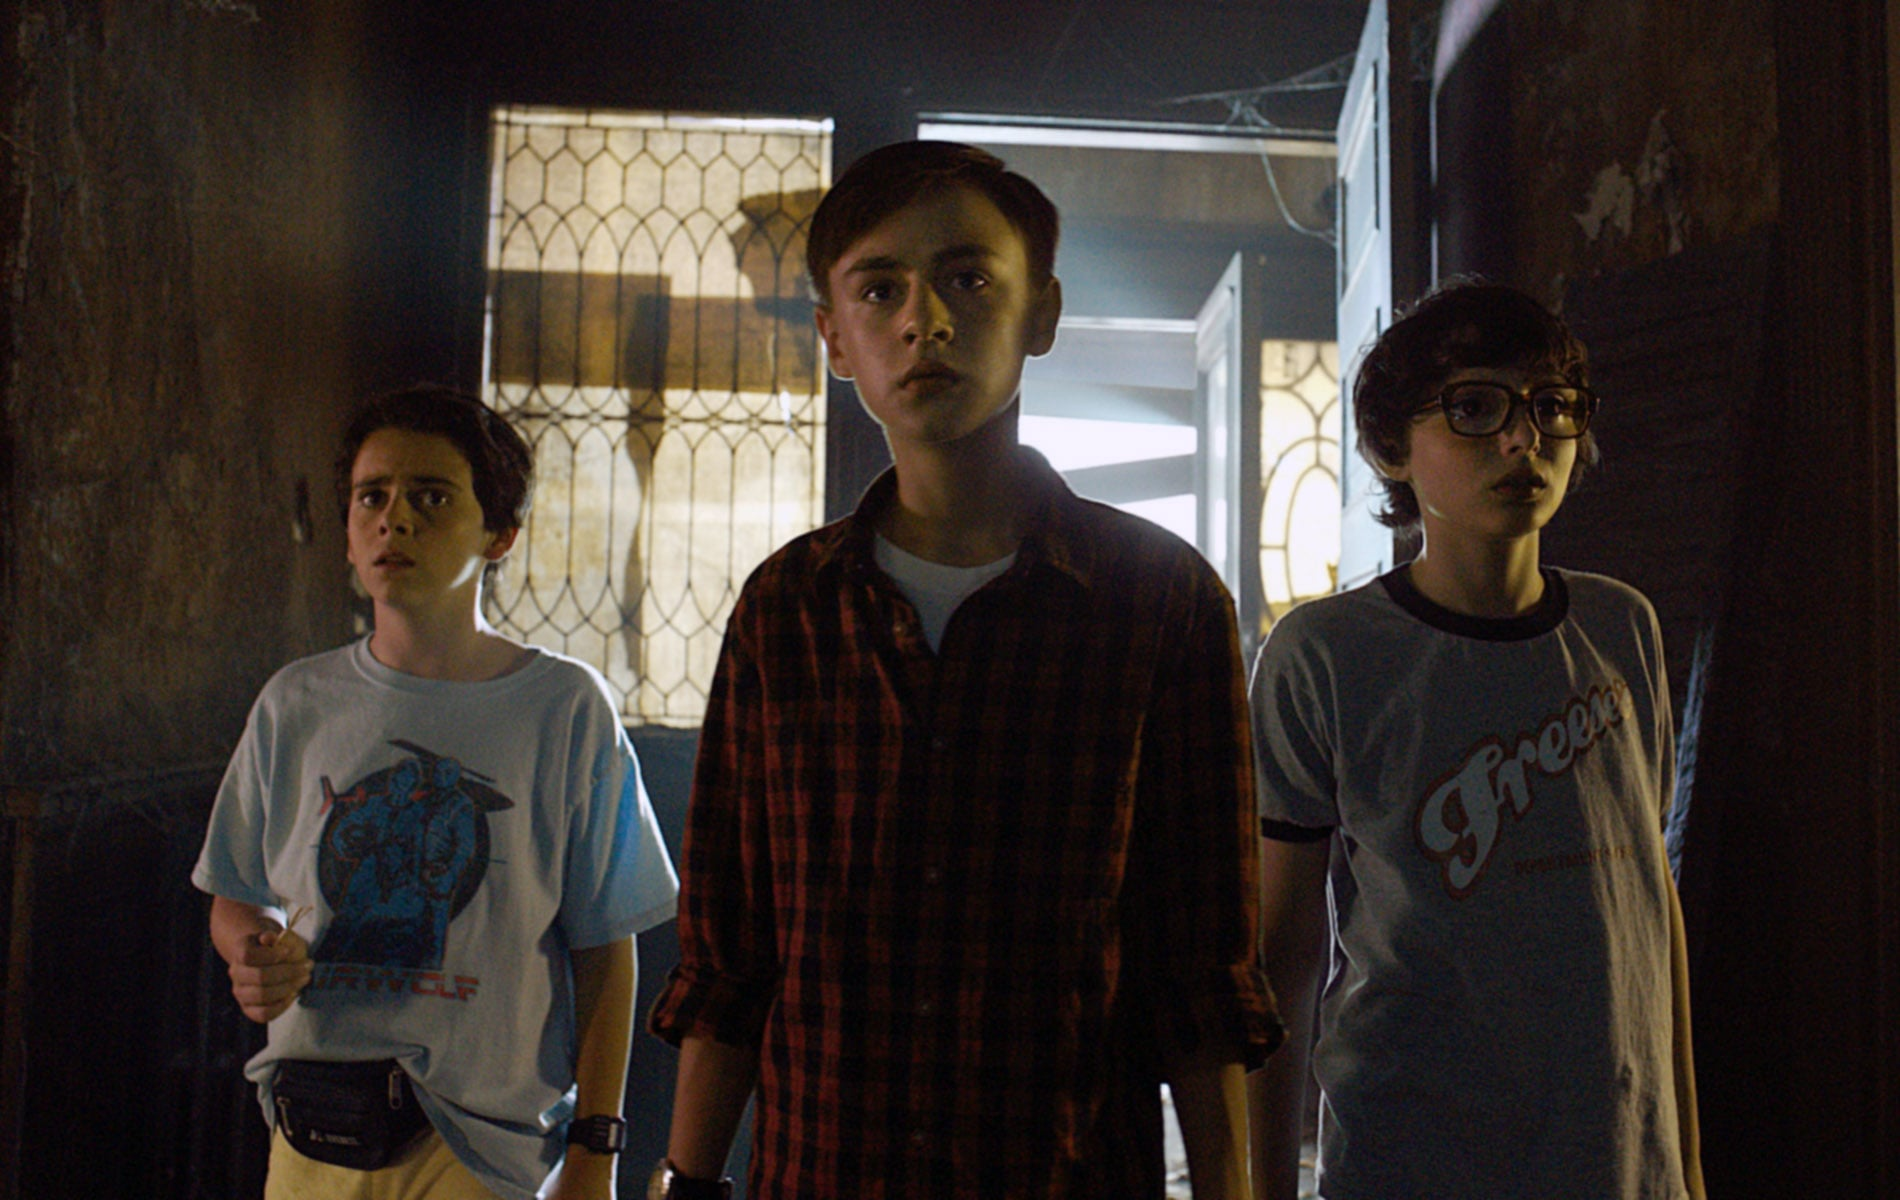 IT, from left: Jack Dylan Grazer, Jaeden Lieberher, Finn Wolfhard, 2017.  Warner Bros. /Courtesy Everett Collection